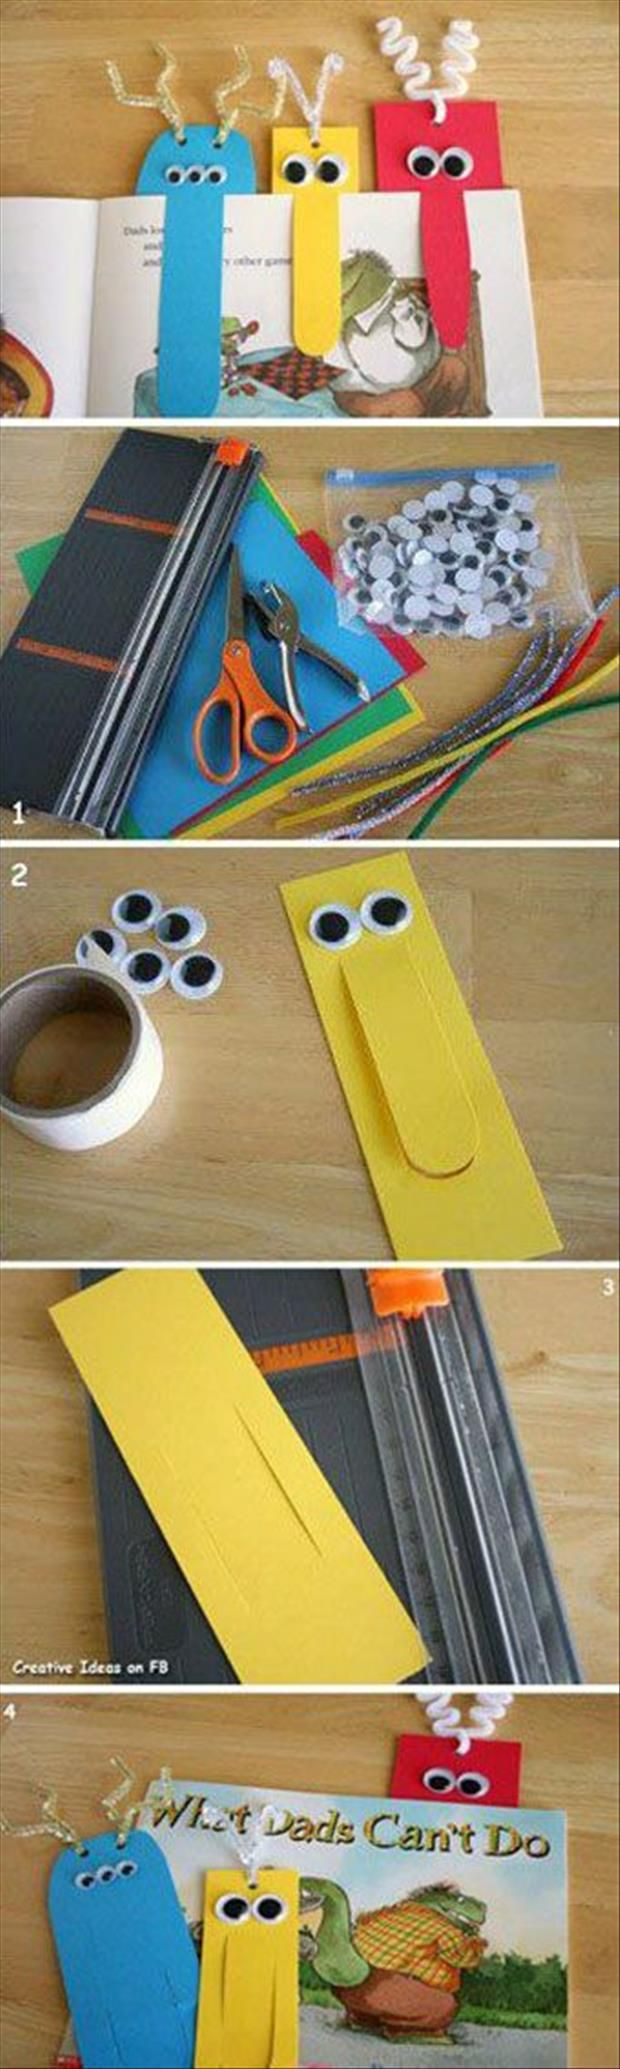 joindarkside » Do It Yourself Craft Ideas Of The Week ! (20 Pics)